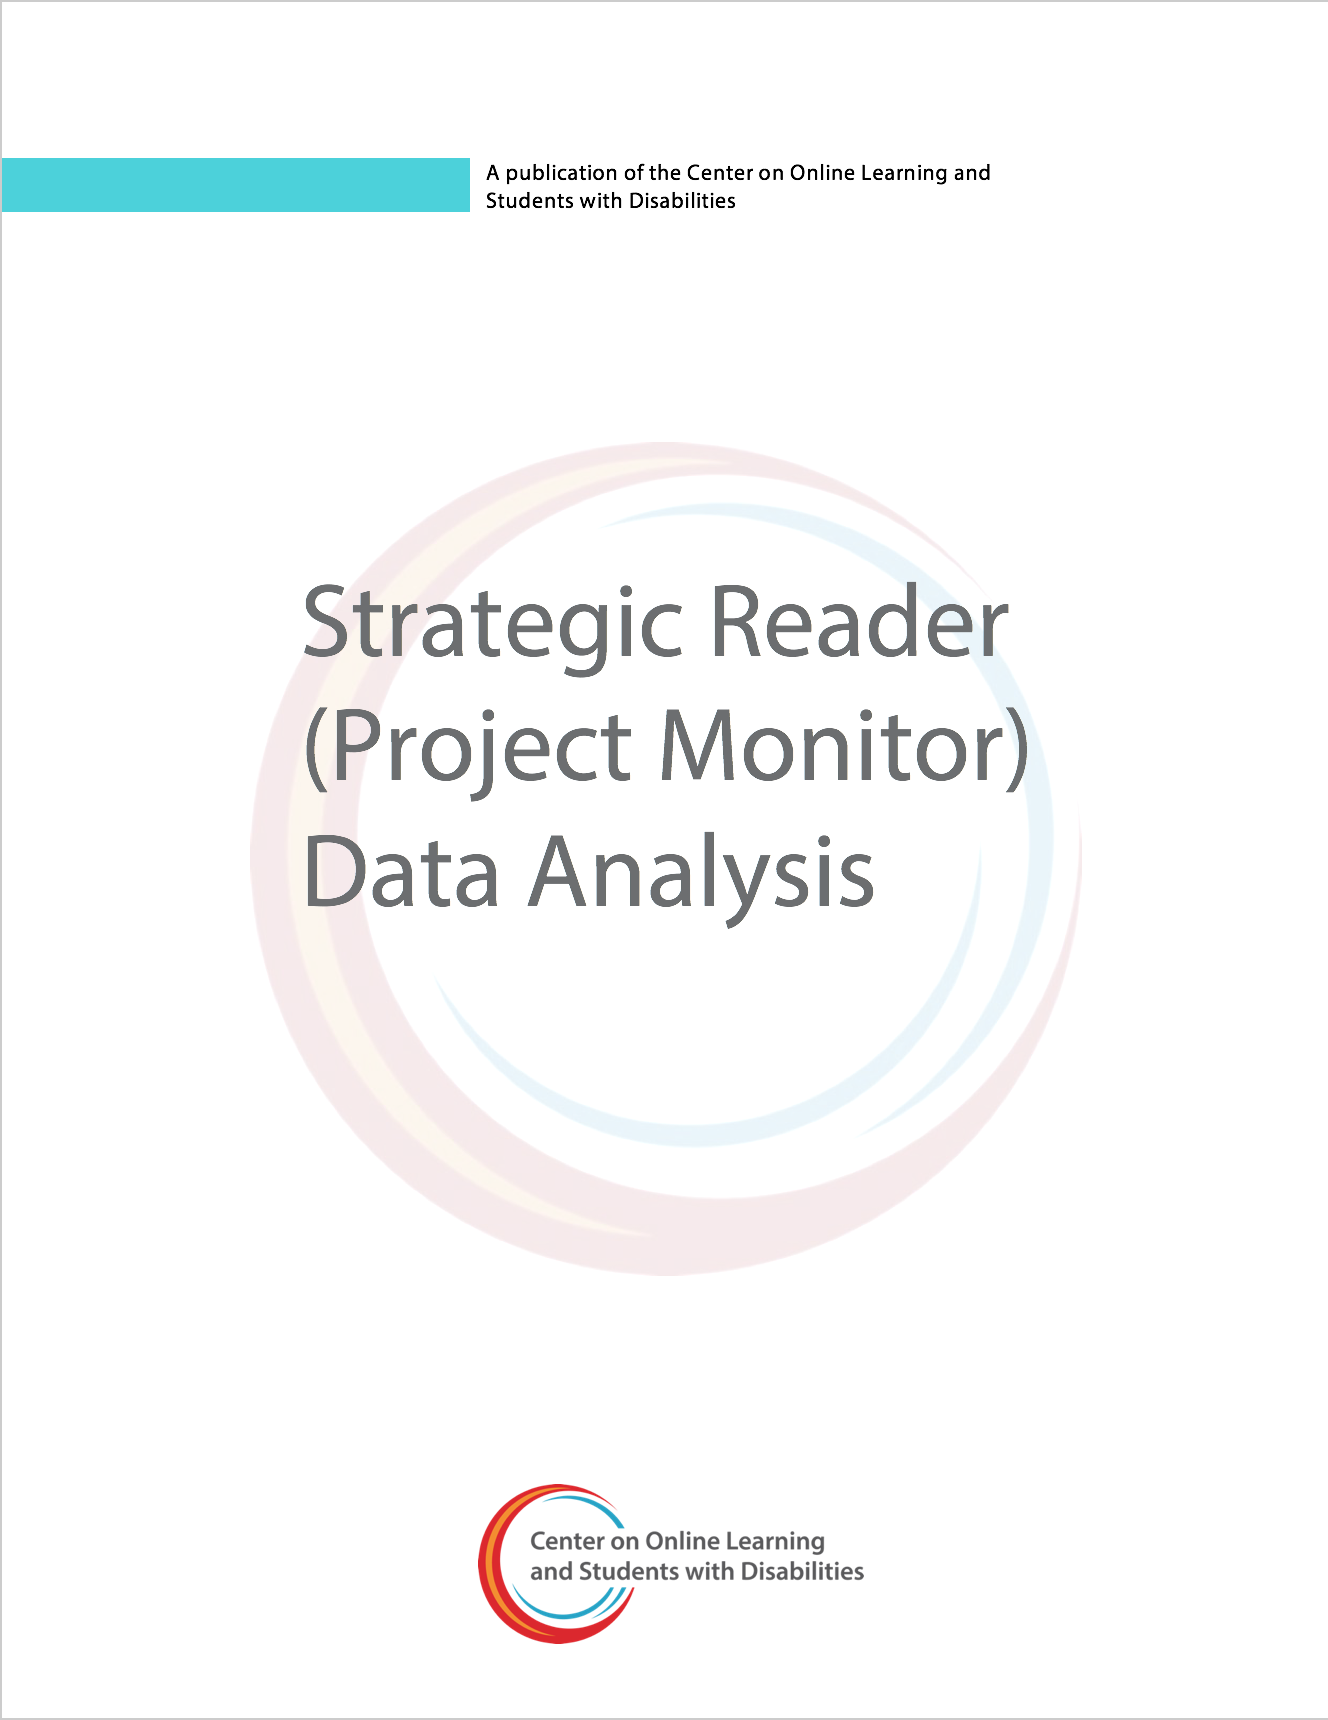 Strategic Reader (Project Monitor) Data Analysis